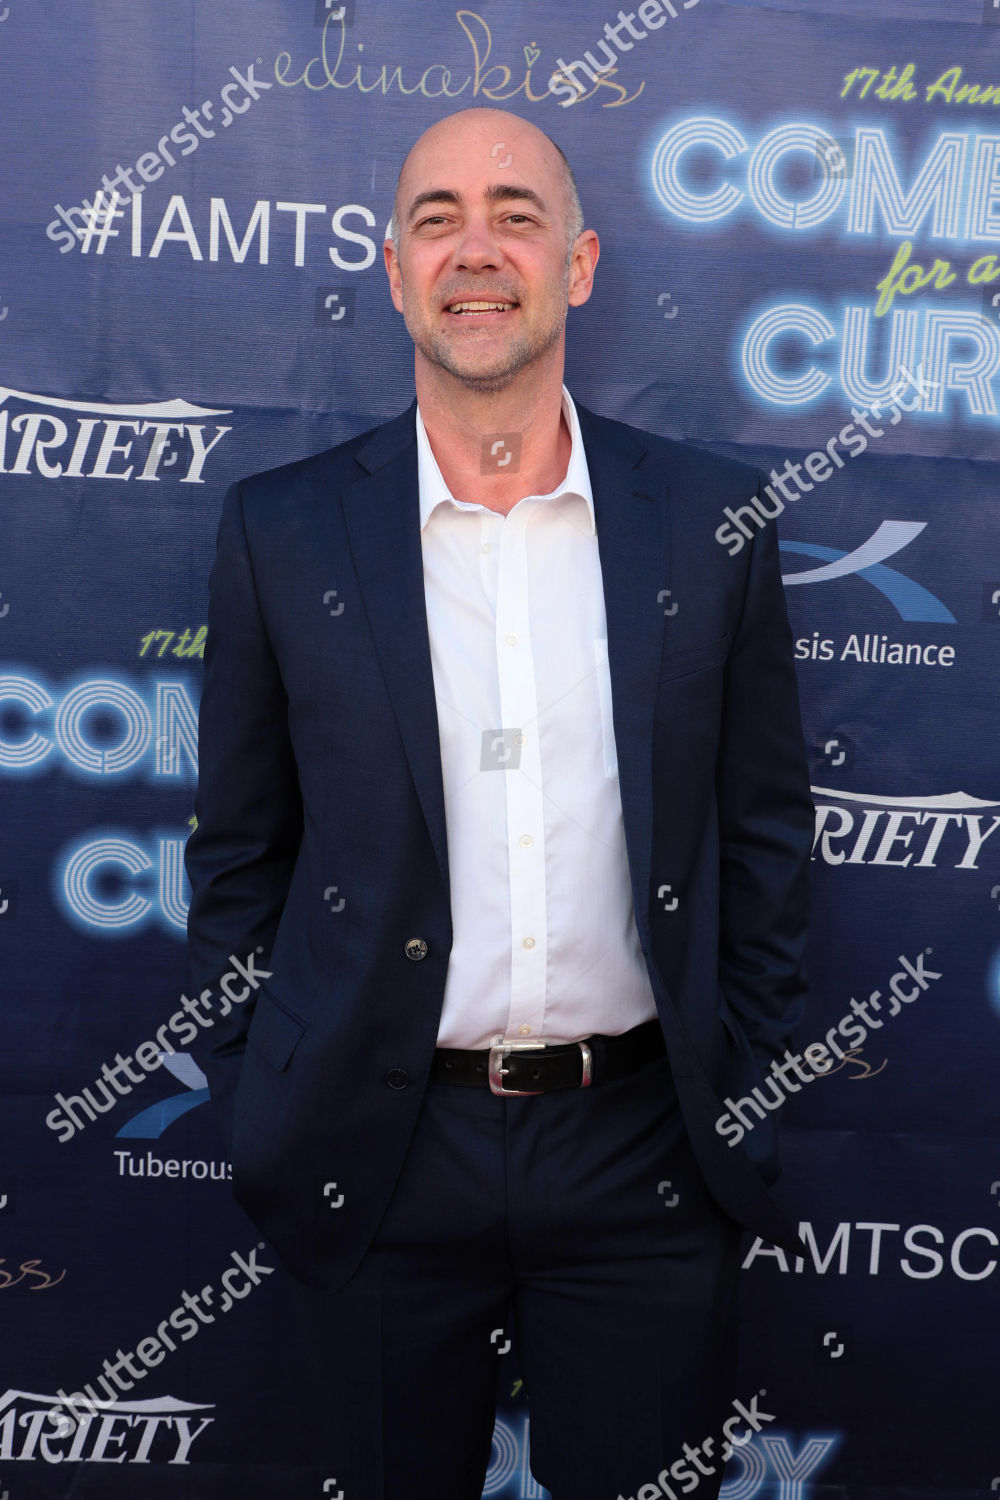 Stock photo of 17th Annual Comedy for a Cure benefiting Tuberous Sclerosis Alliance, Universal City, Los Angeles, USA - 08 Apr 2018